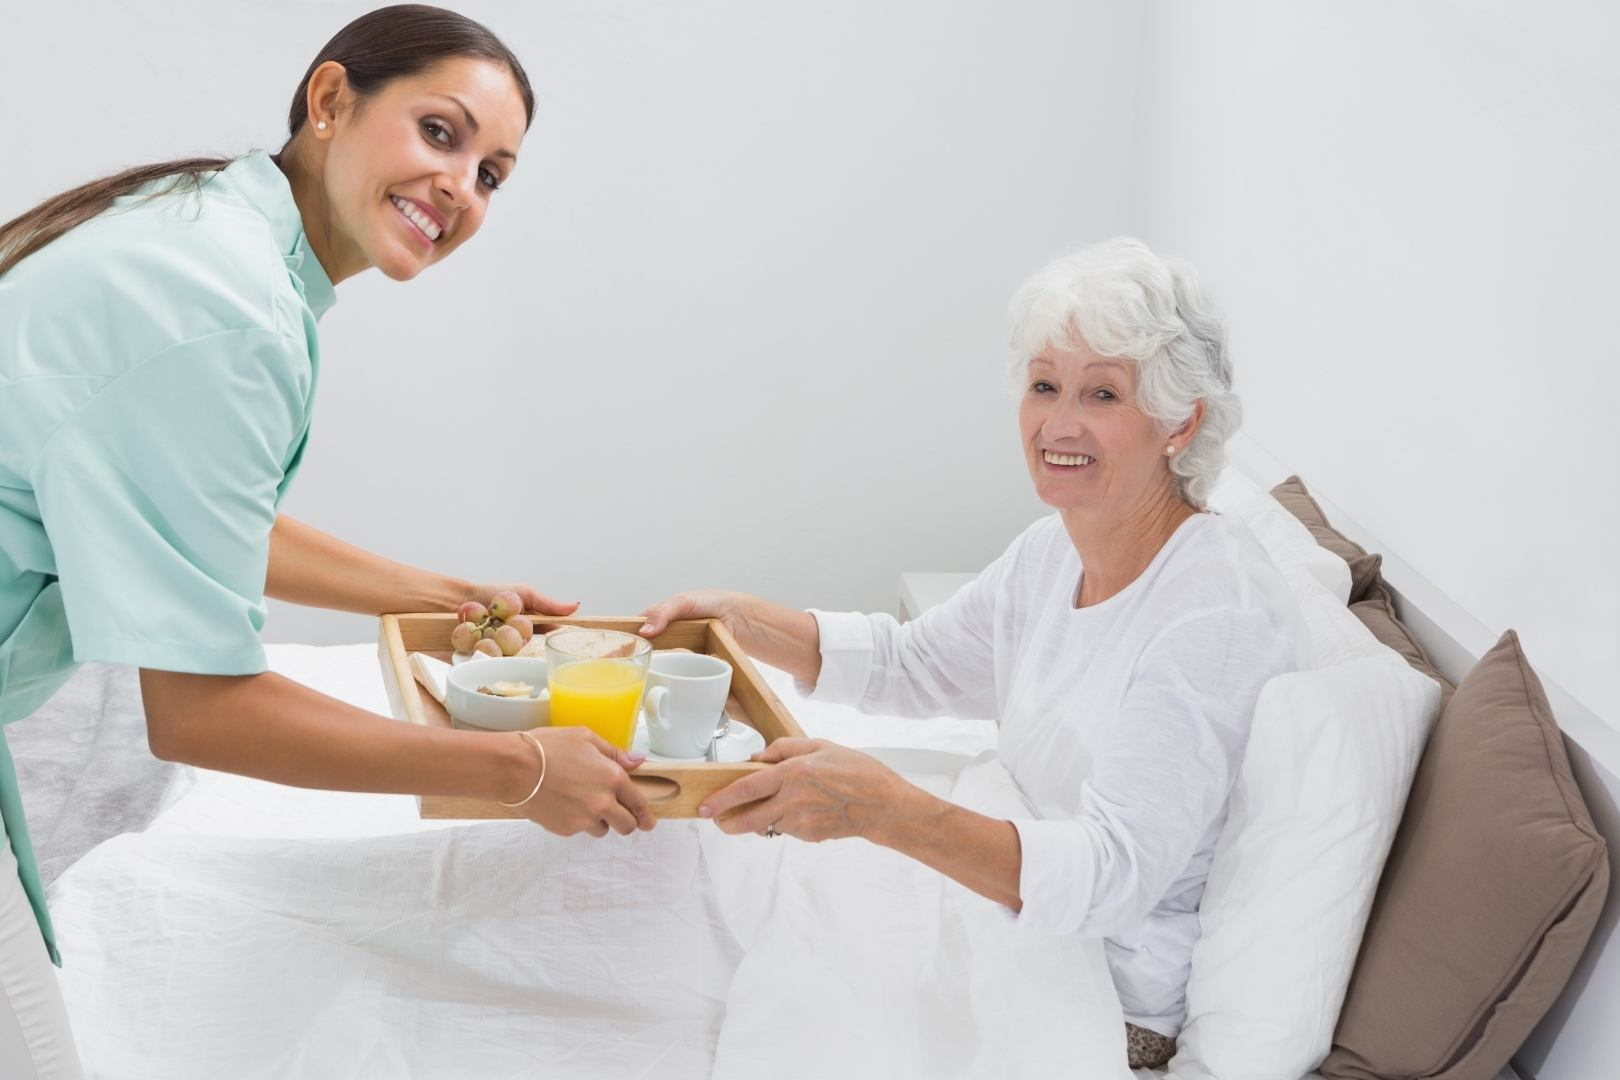 Home nurse giving a breakfast to the old woman on the bed